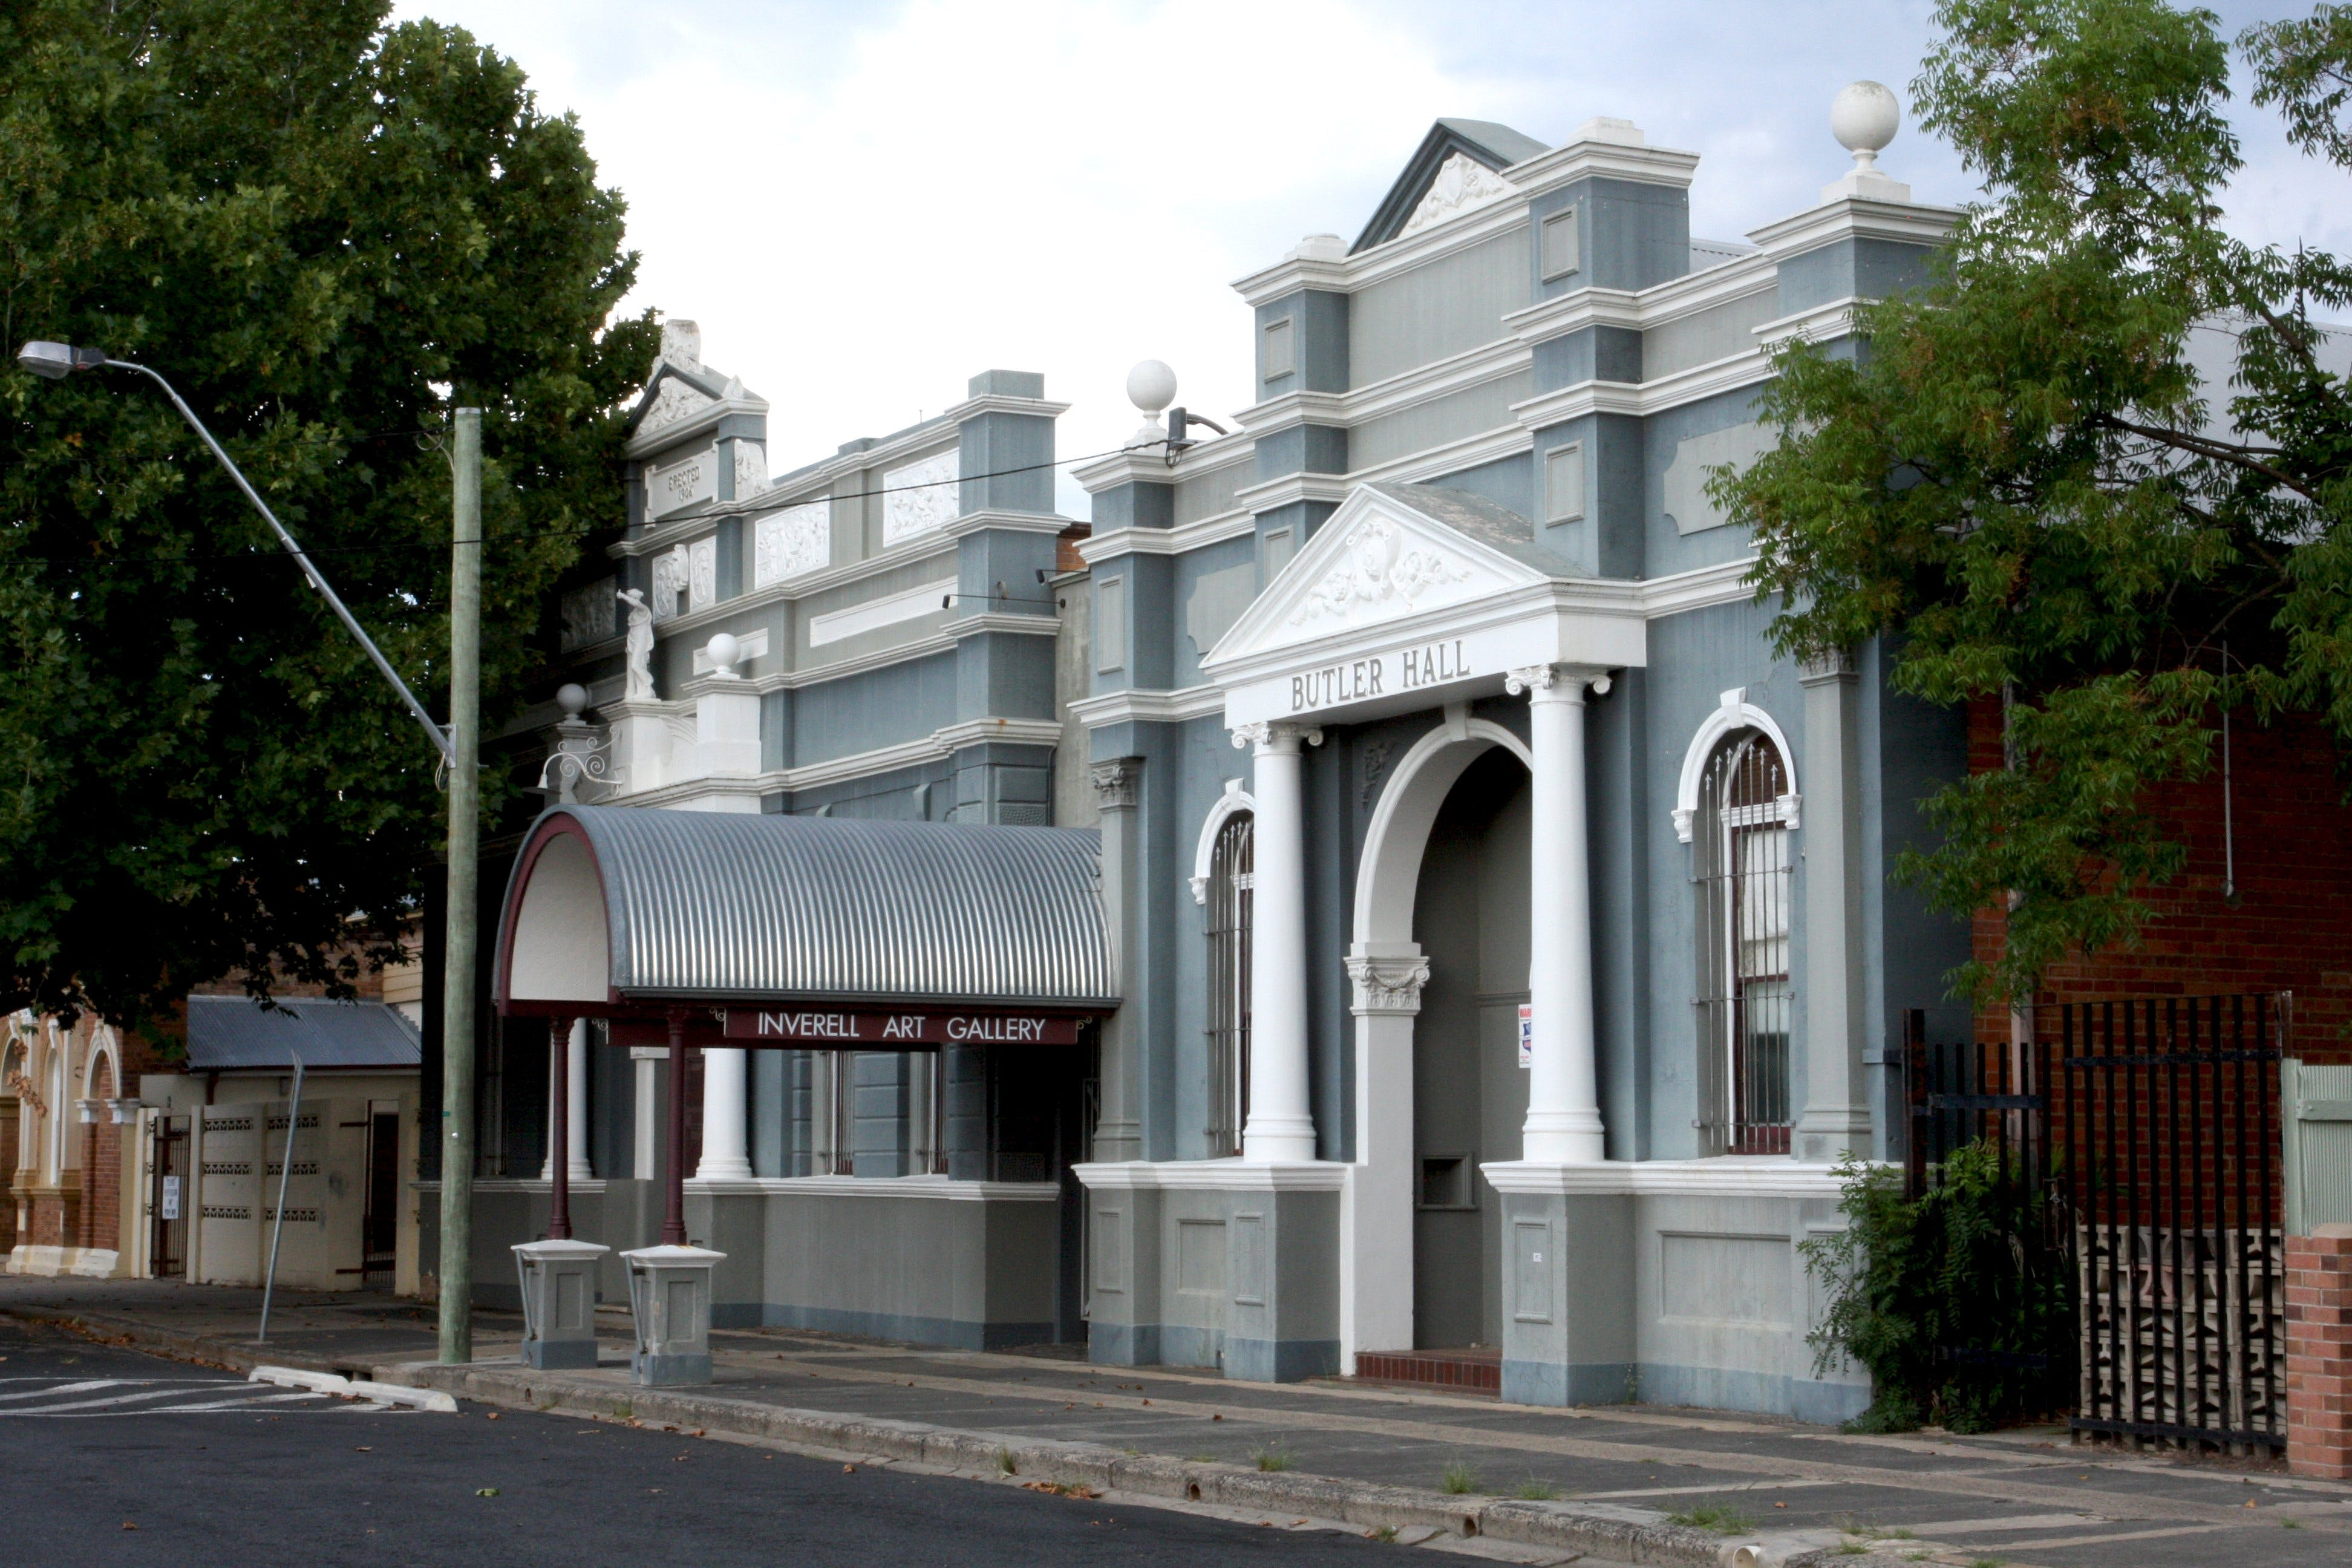 Inverell Art  Gallery - Tweed Heads Accommodation